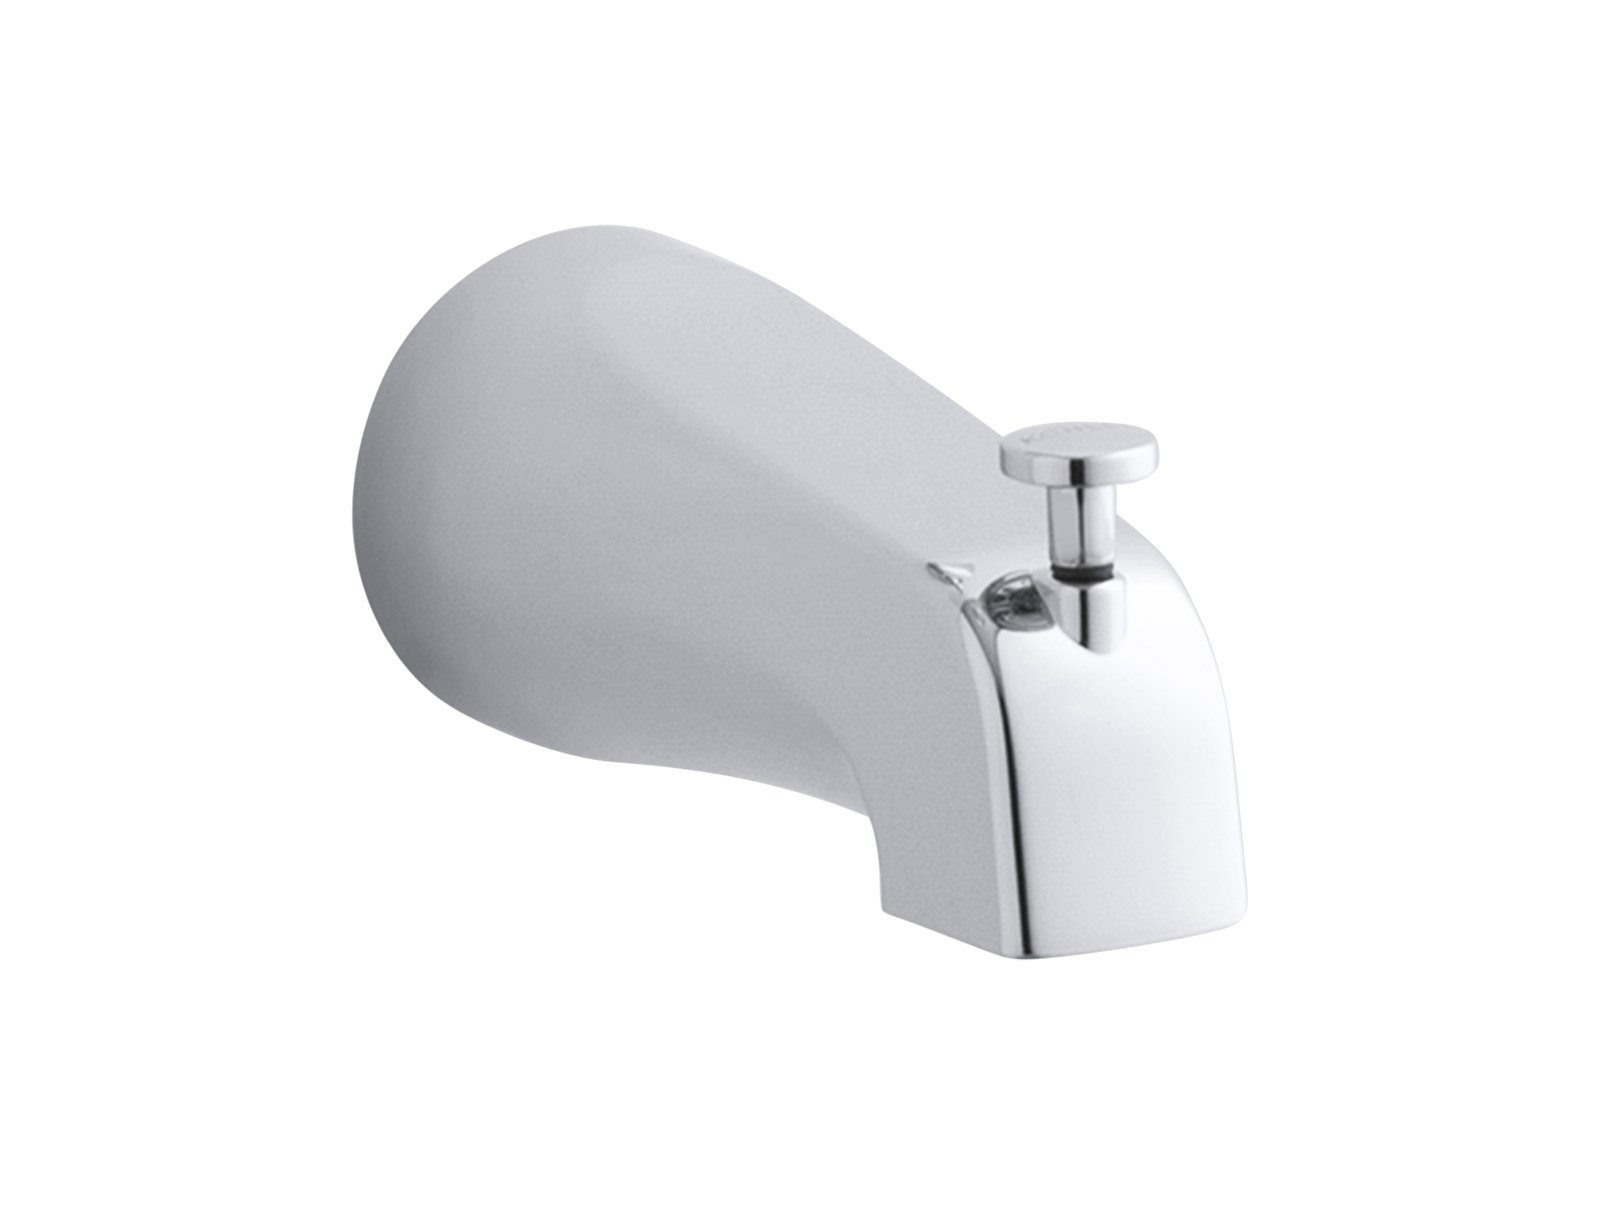 KOHLER GENUINE PART GP85556-CP DIVERTER BATH SPOUT - SLIP FIT CONNECTION